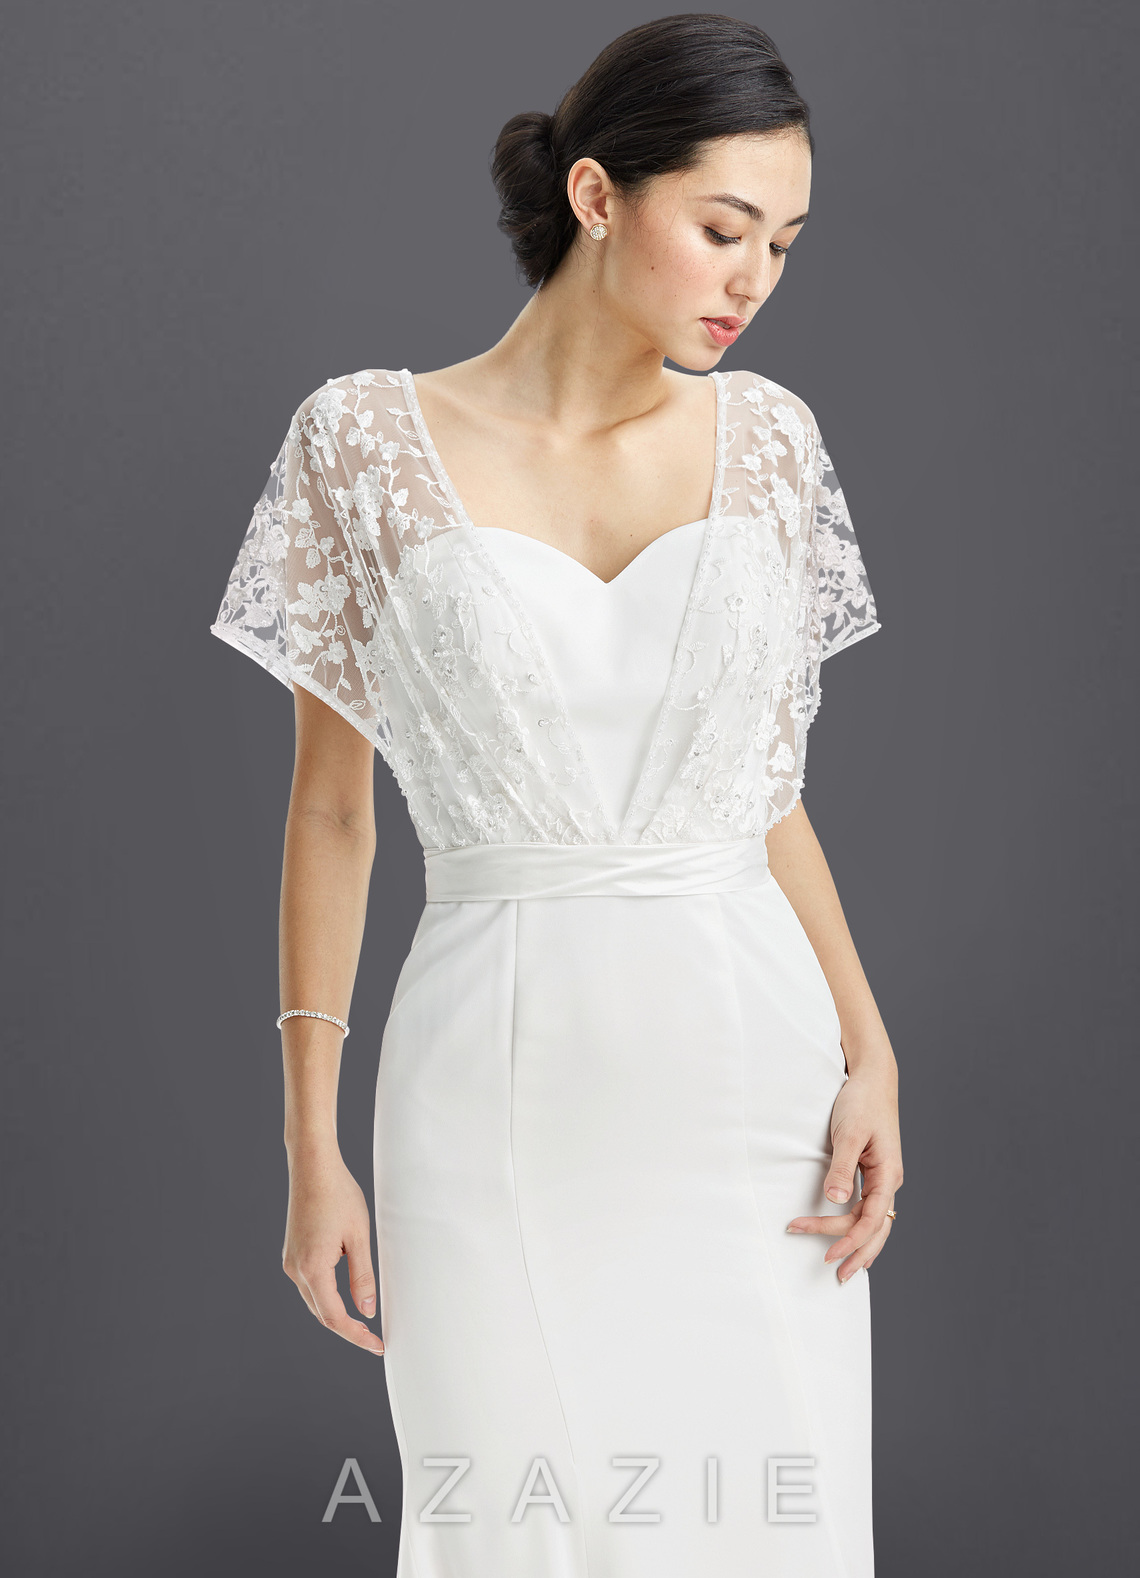 064afb867109 Azazie Fallon BG Wedding Dress | Azazie